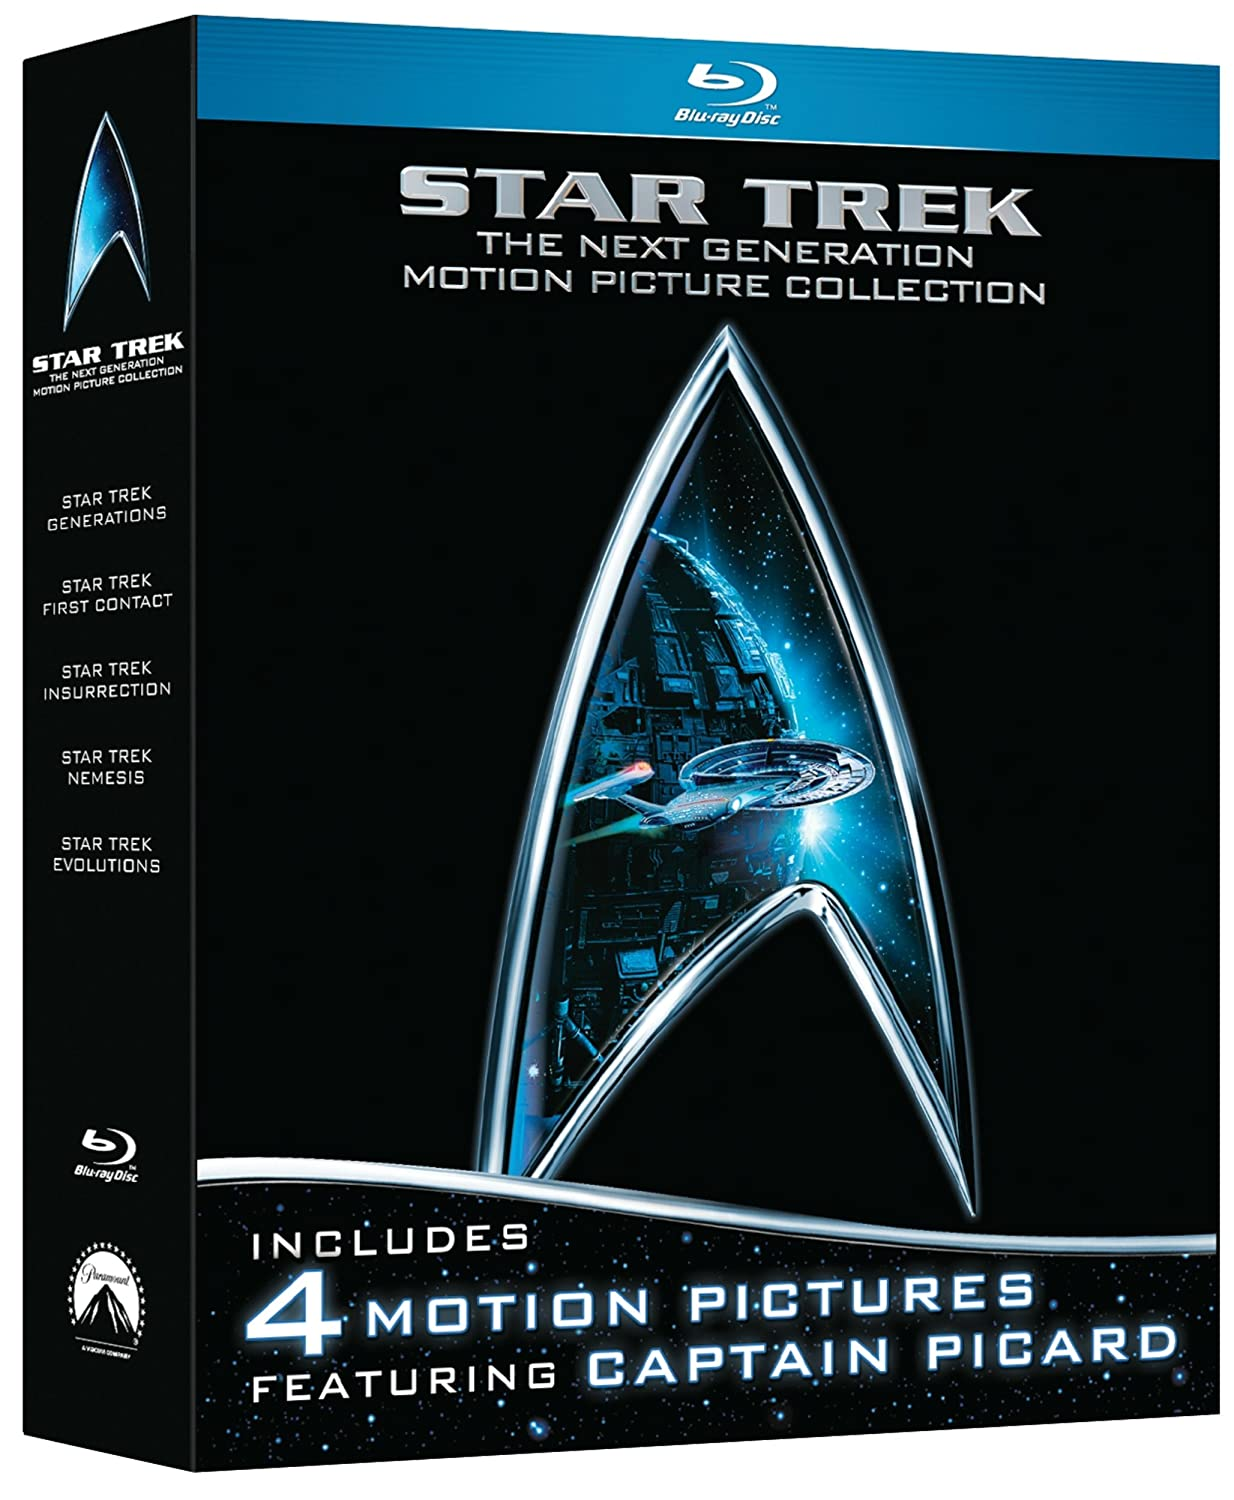 Star Trek: The Next Generation Motion Picture Collection (First Contact /Generations / Insurrection / Nemesis) [Blu-ray]